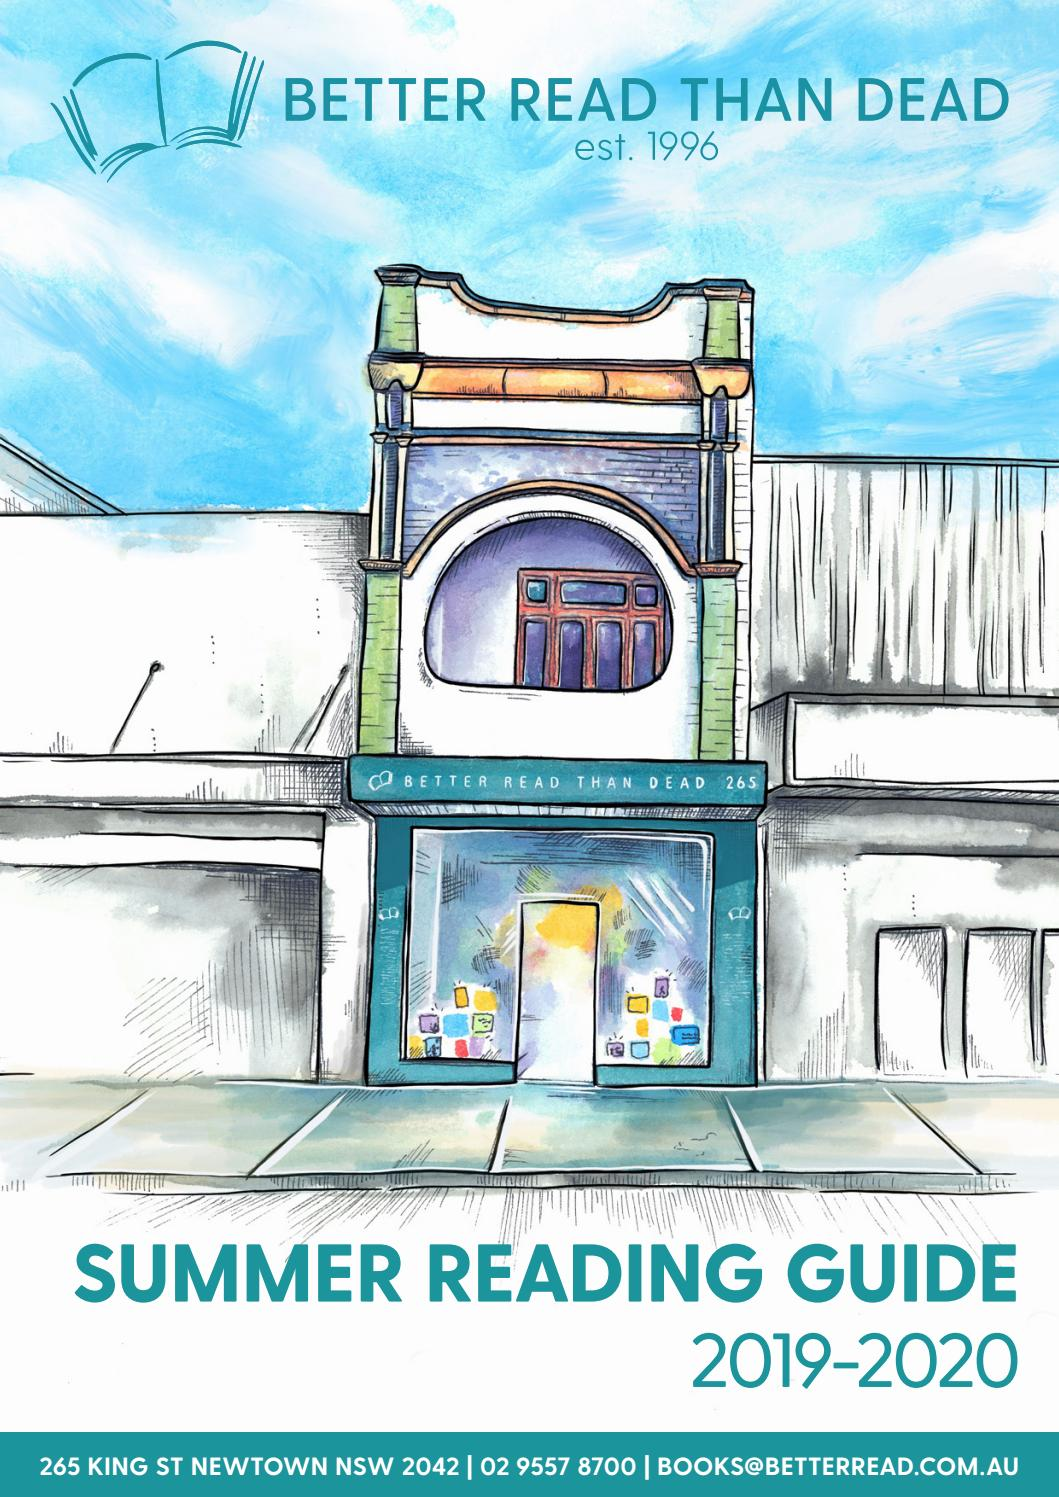 Better Read Than Dead Summer Reading Guide 2019-2020 by